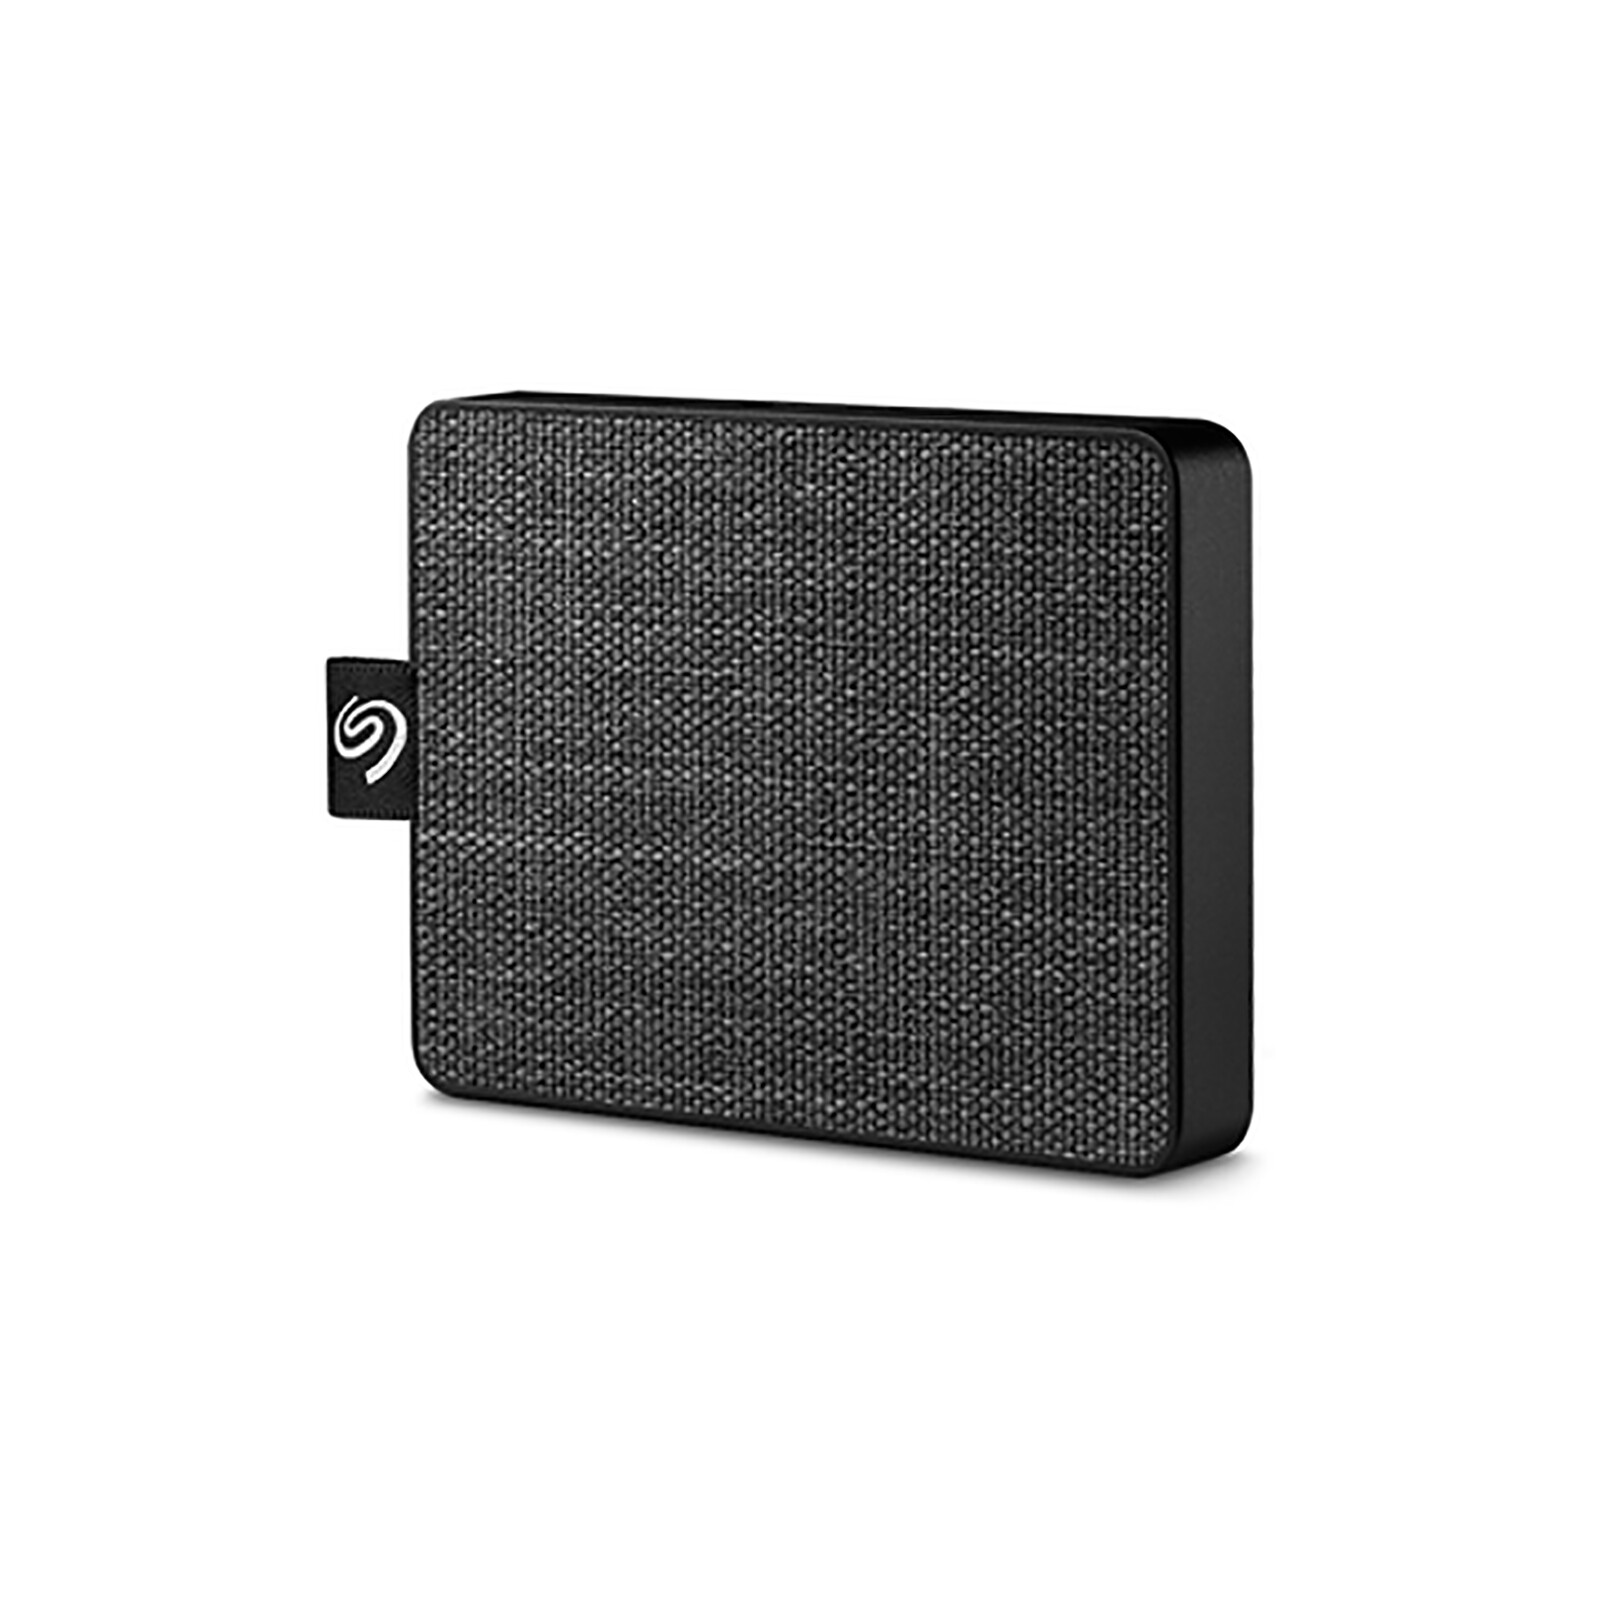 Seagate One Touch SSD 500GB extern USB 3.0 black